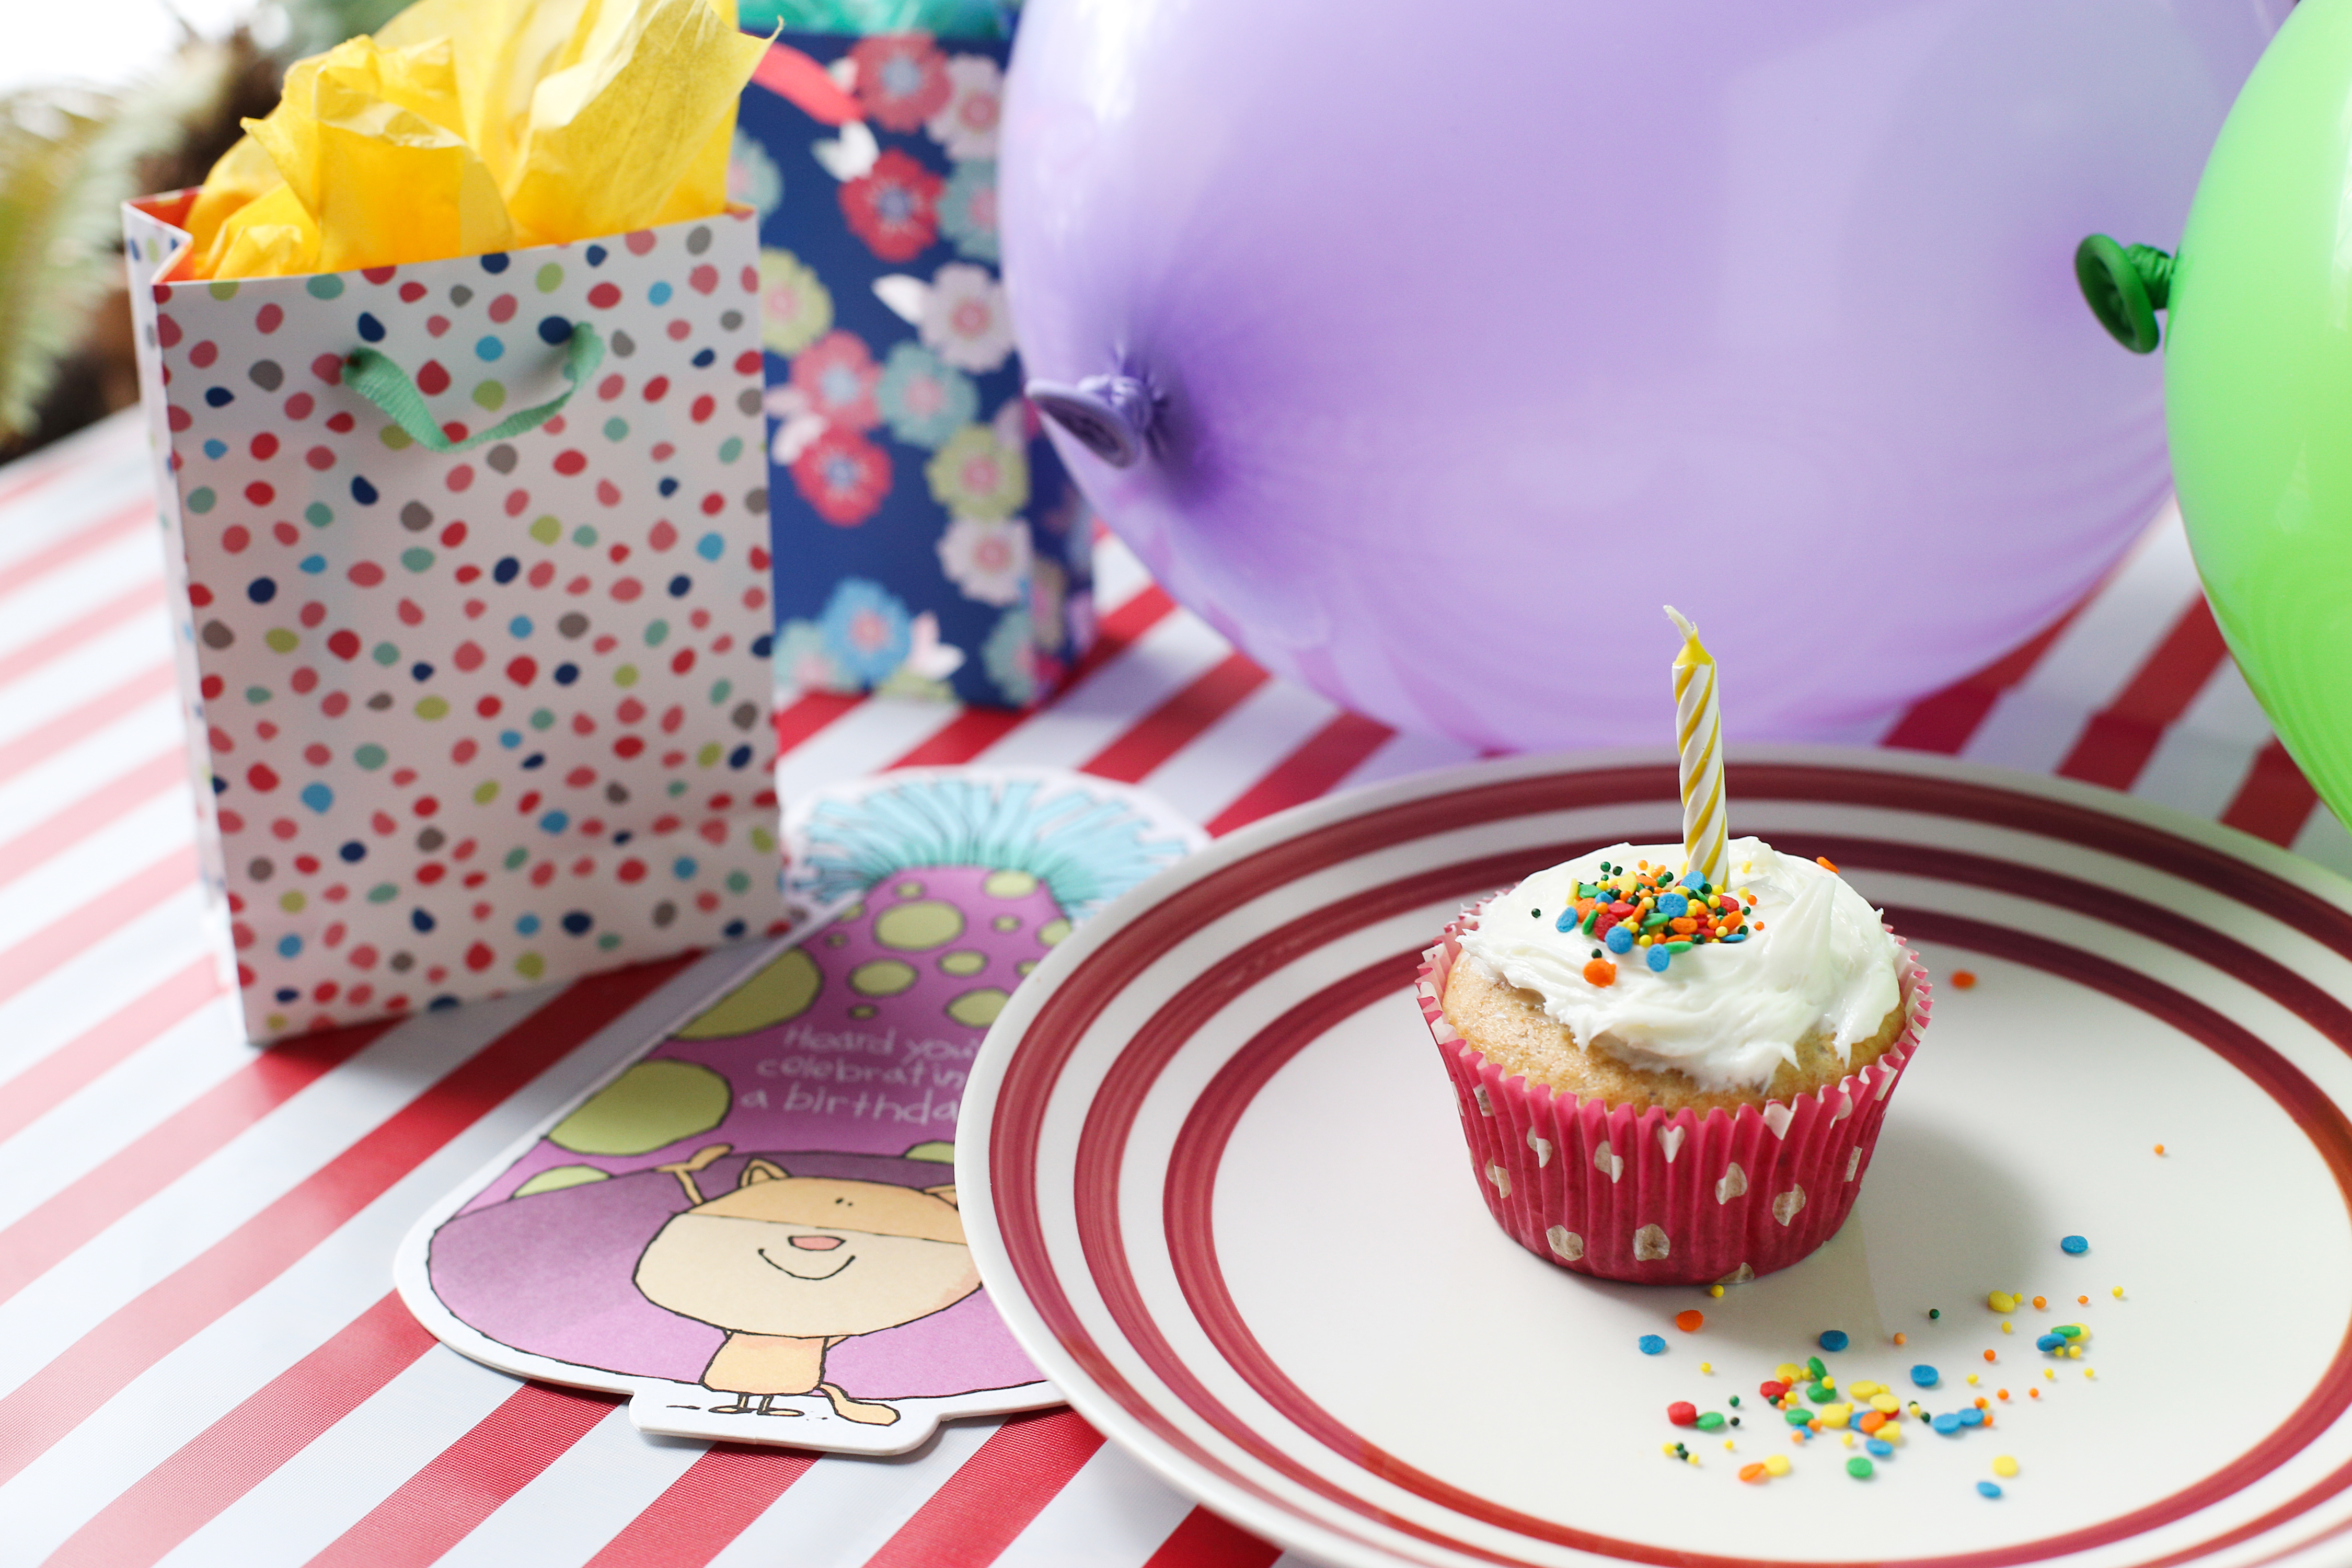 How to decorate a house for a birthday party synonym for Decor synonym